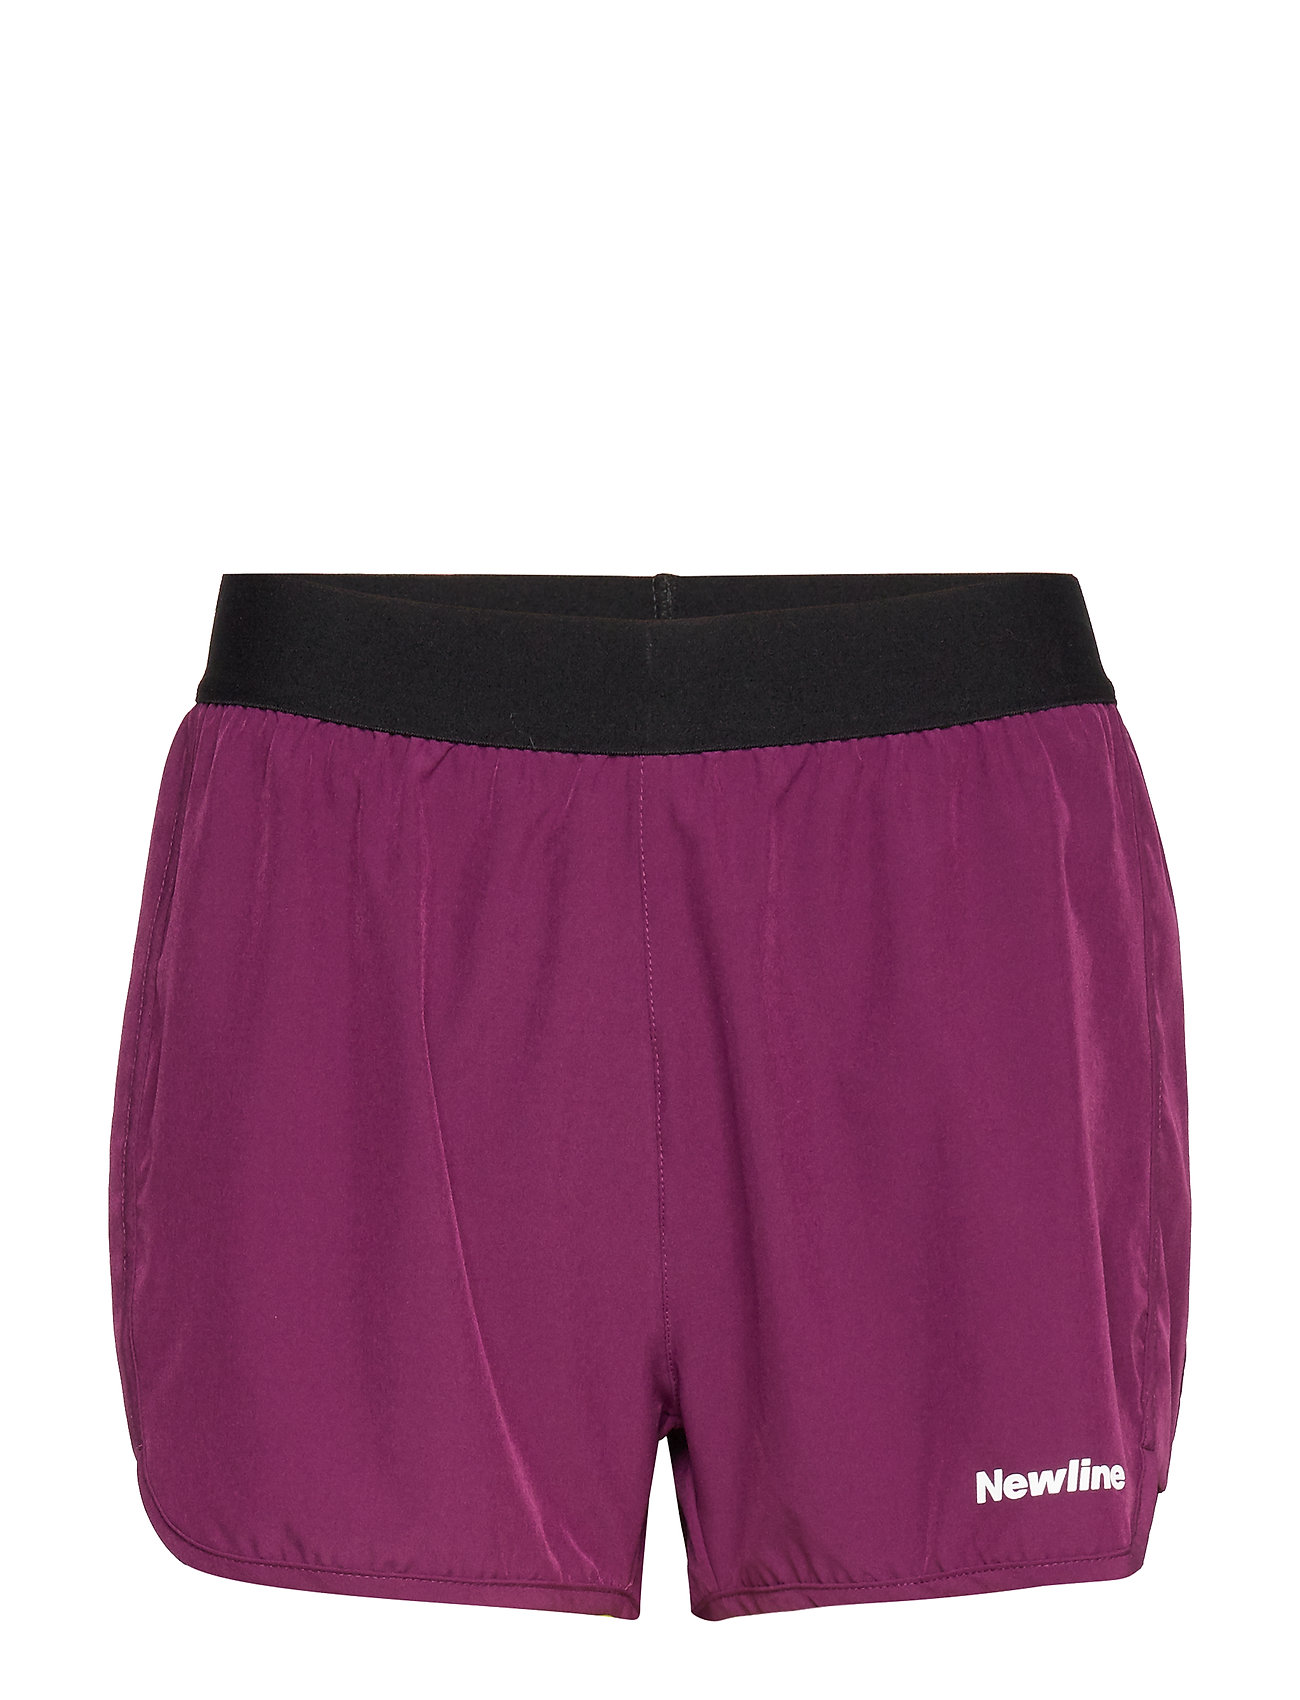 Newline 2-Lay Shorts - BERRY/LIME